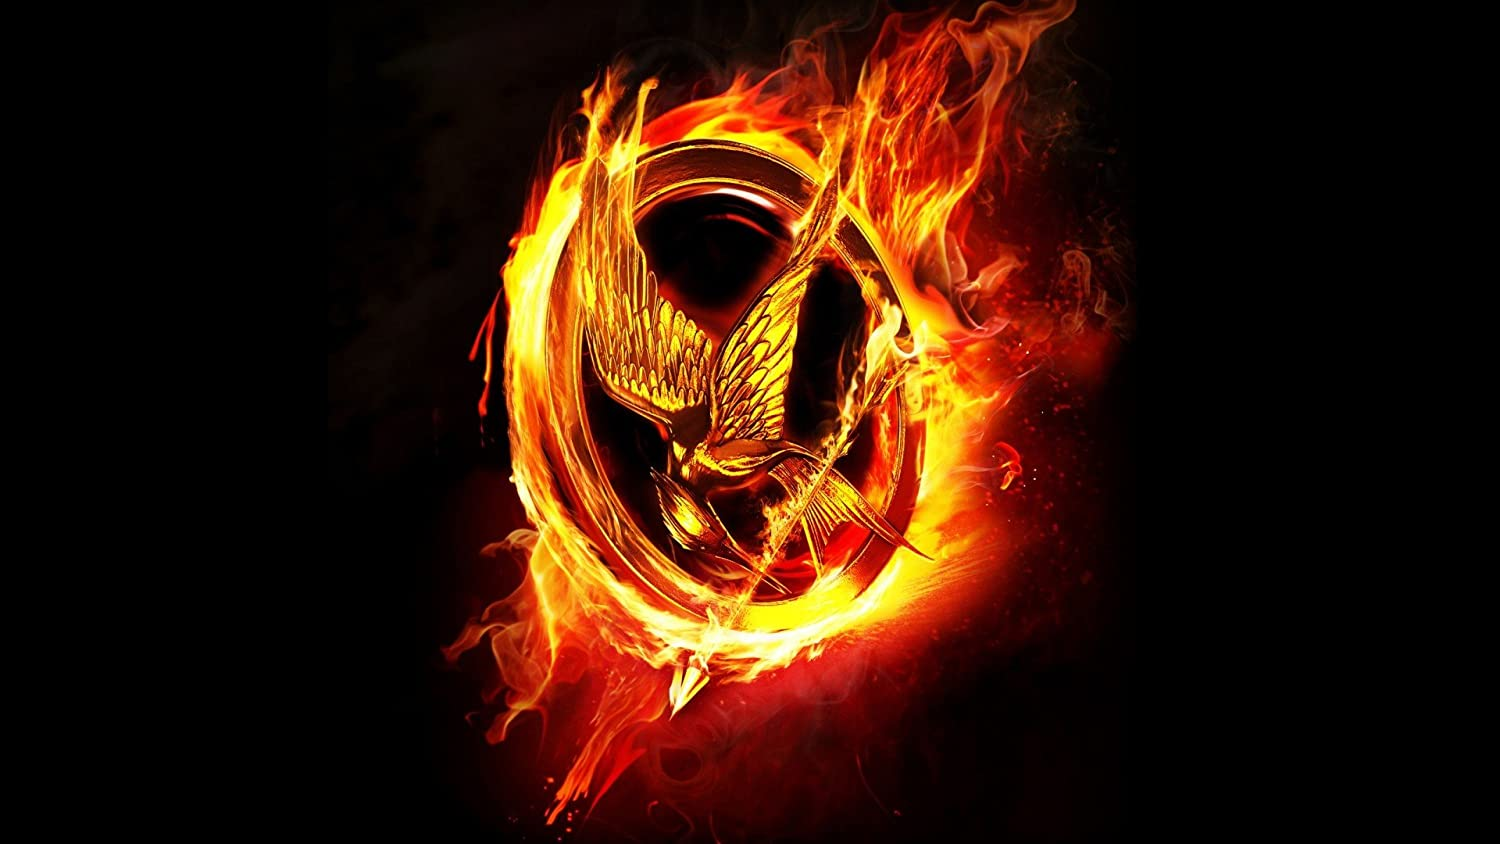 Posterhouzz Movie The Hunger Games Hbo Black Fire Flame Hd Wallpaper Background Fine Art Paper Print Poster Mov1918 Amazon In Home Kitchen